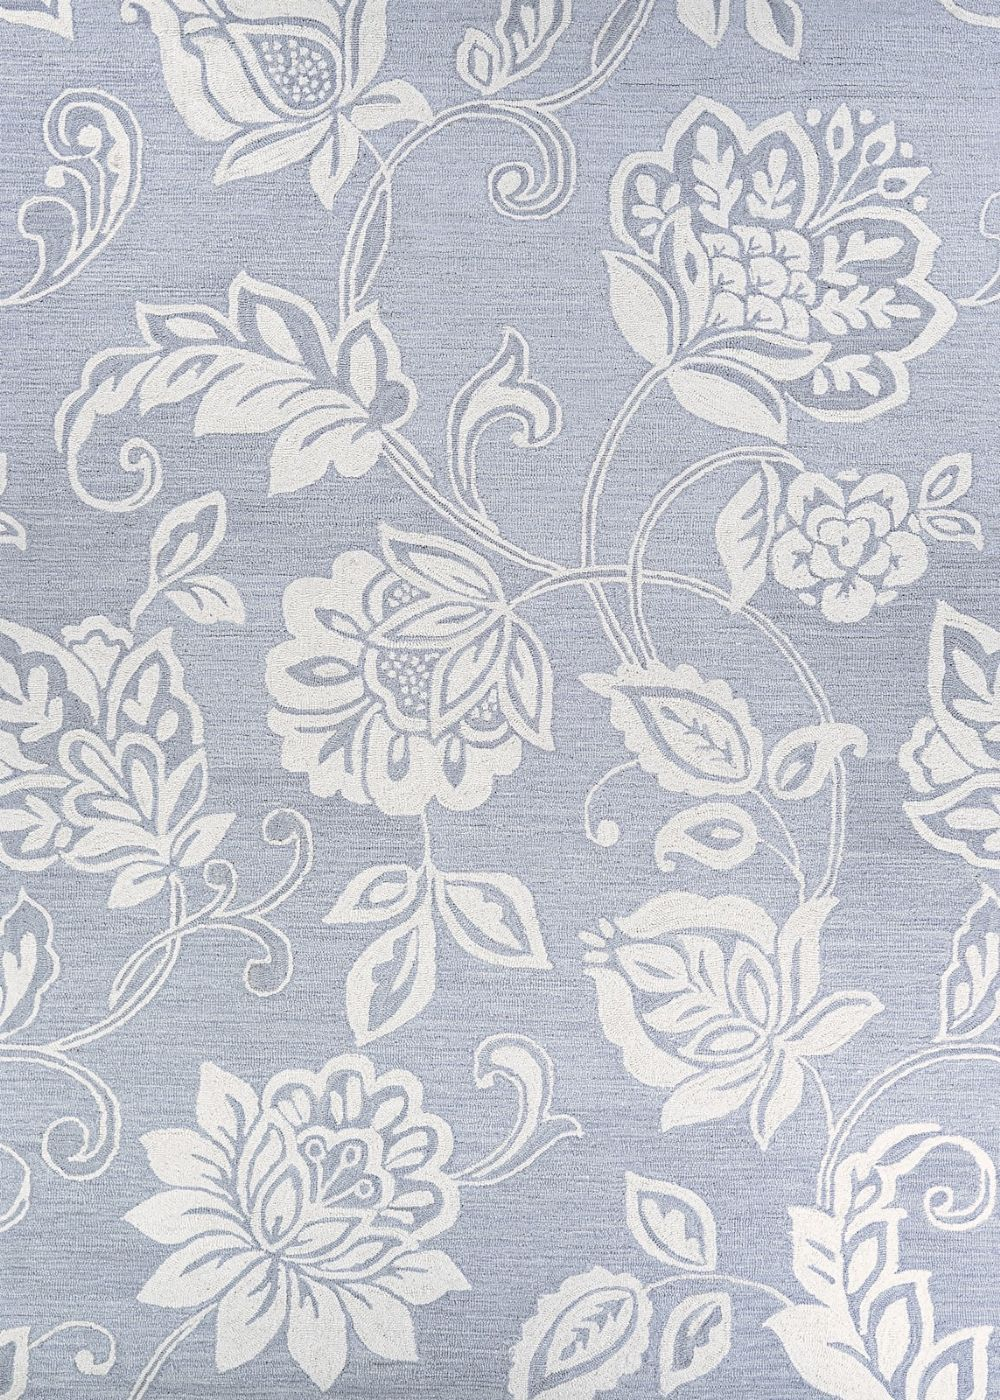 couristan crawford country & floral area rug collection